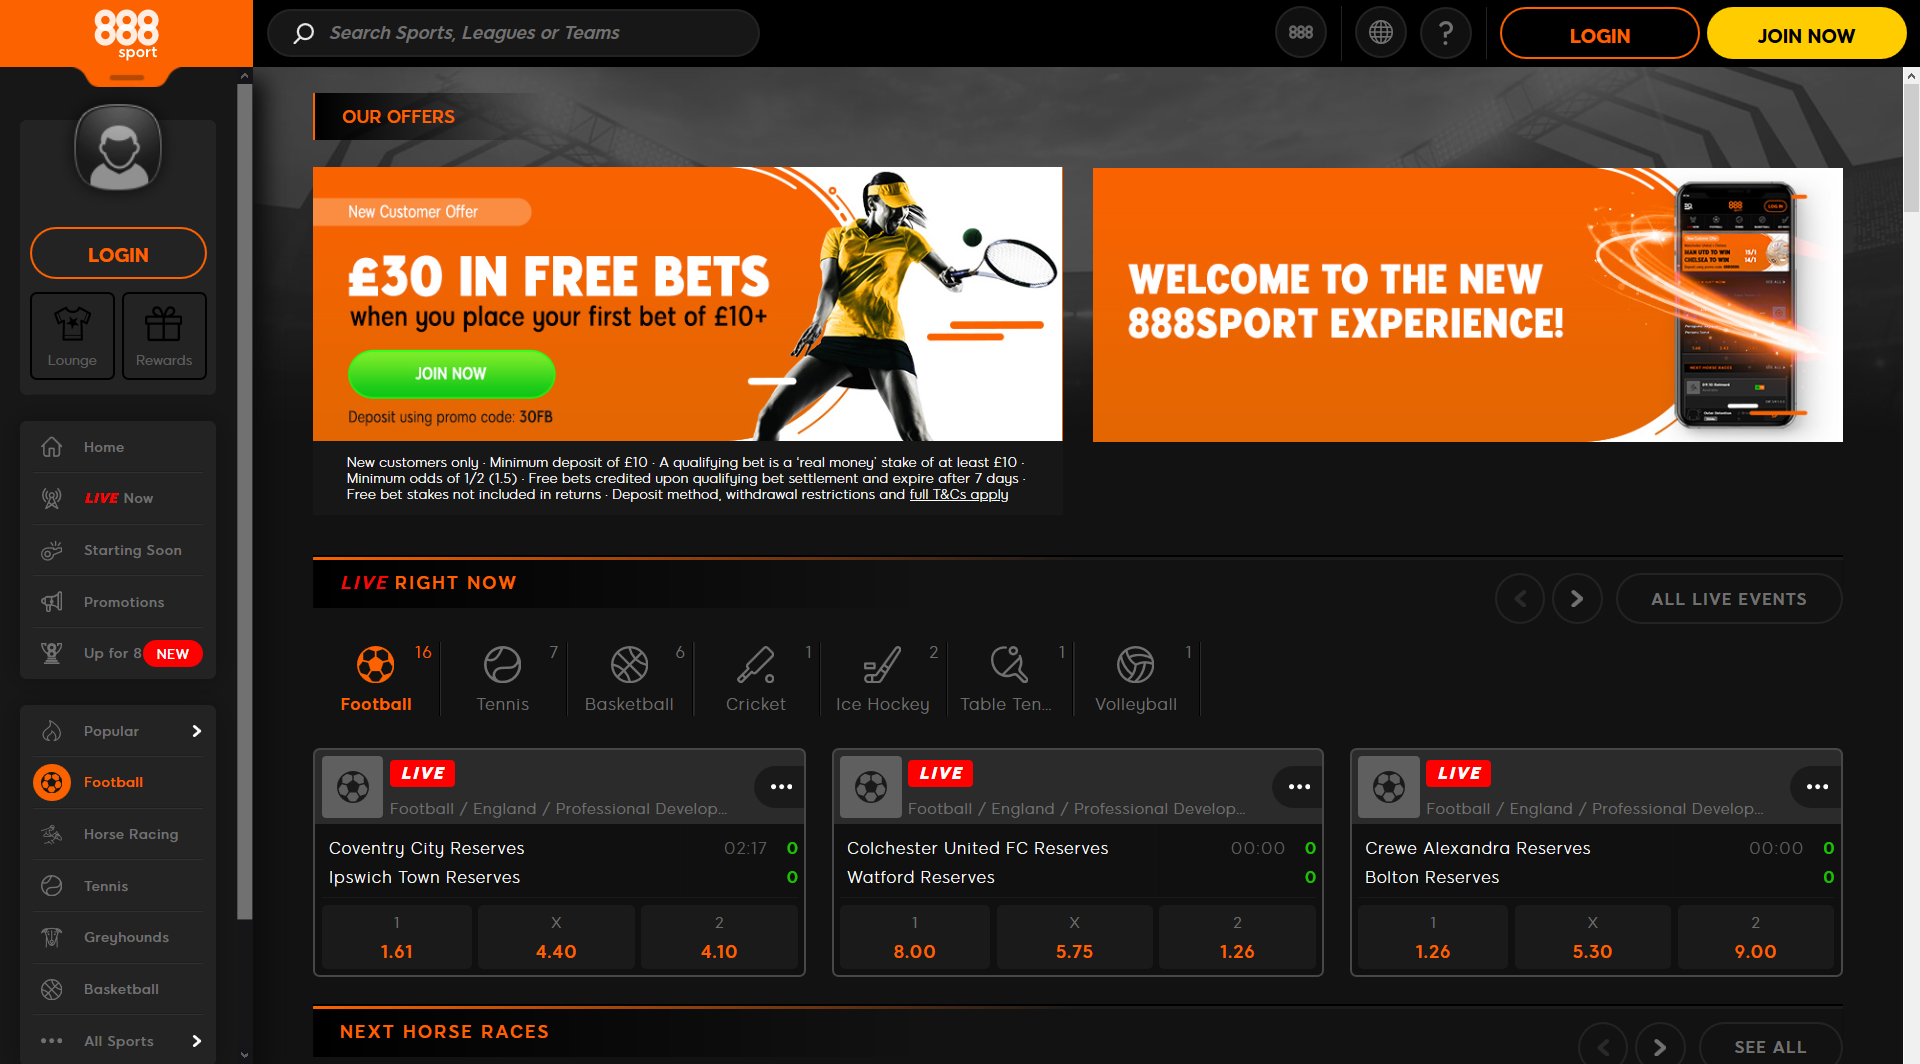 888sport main page